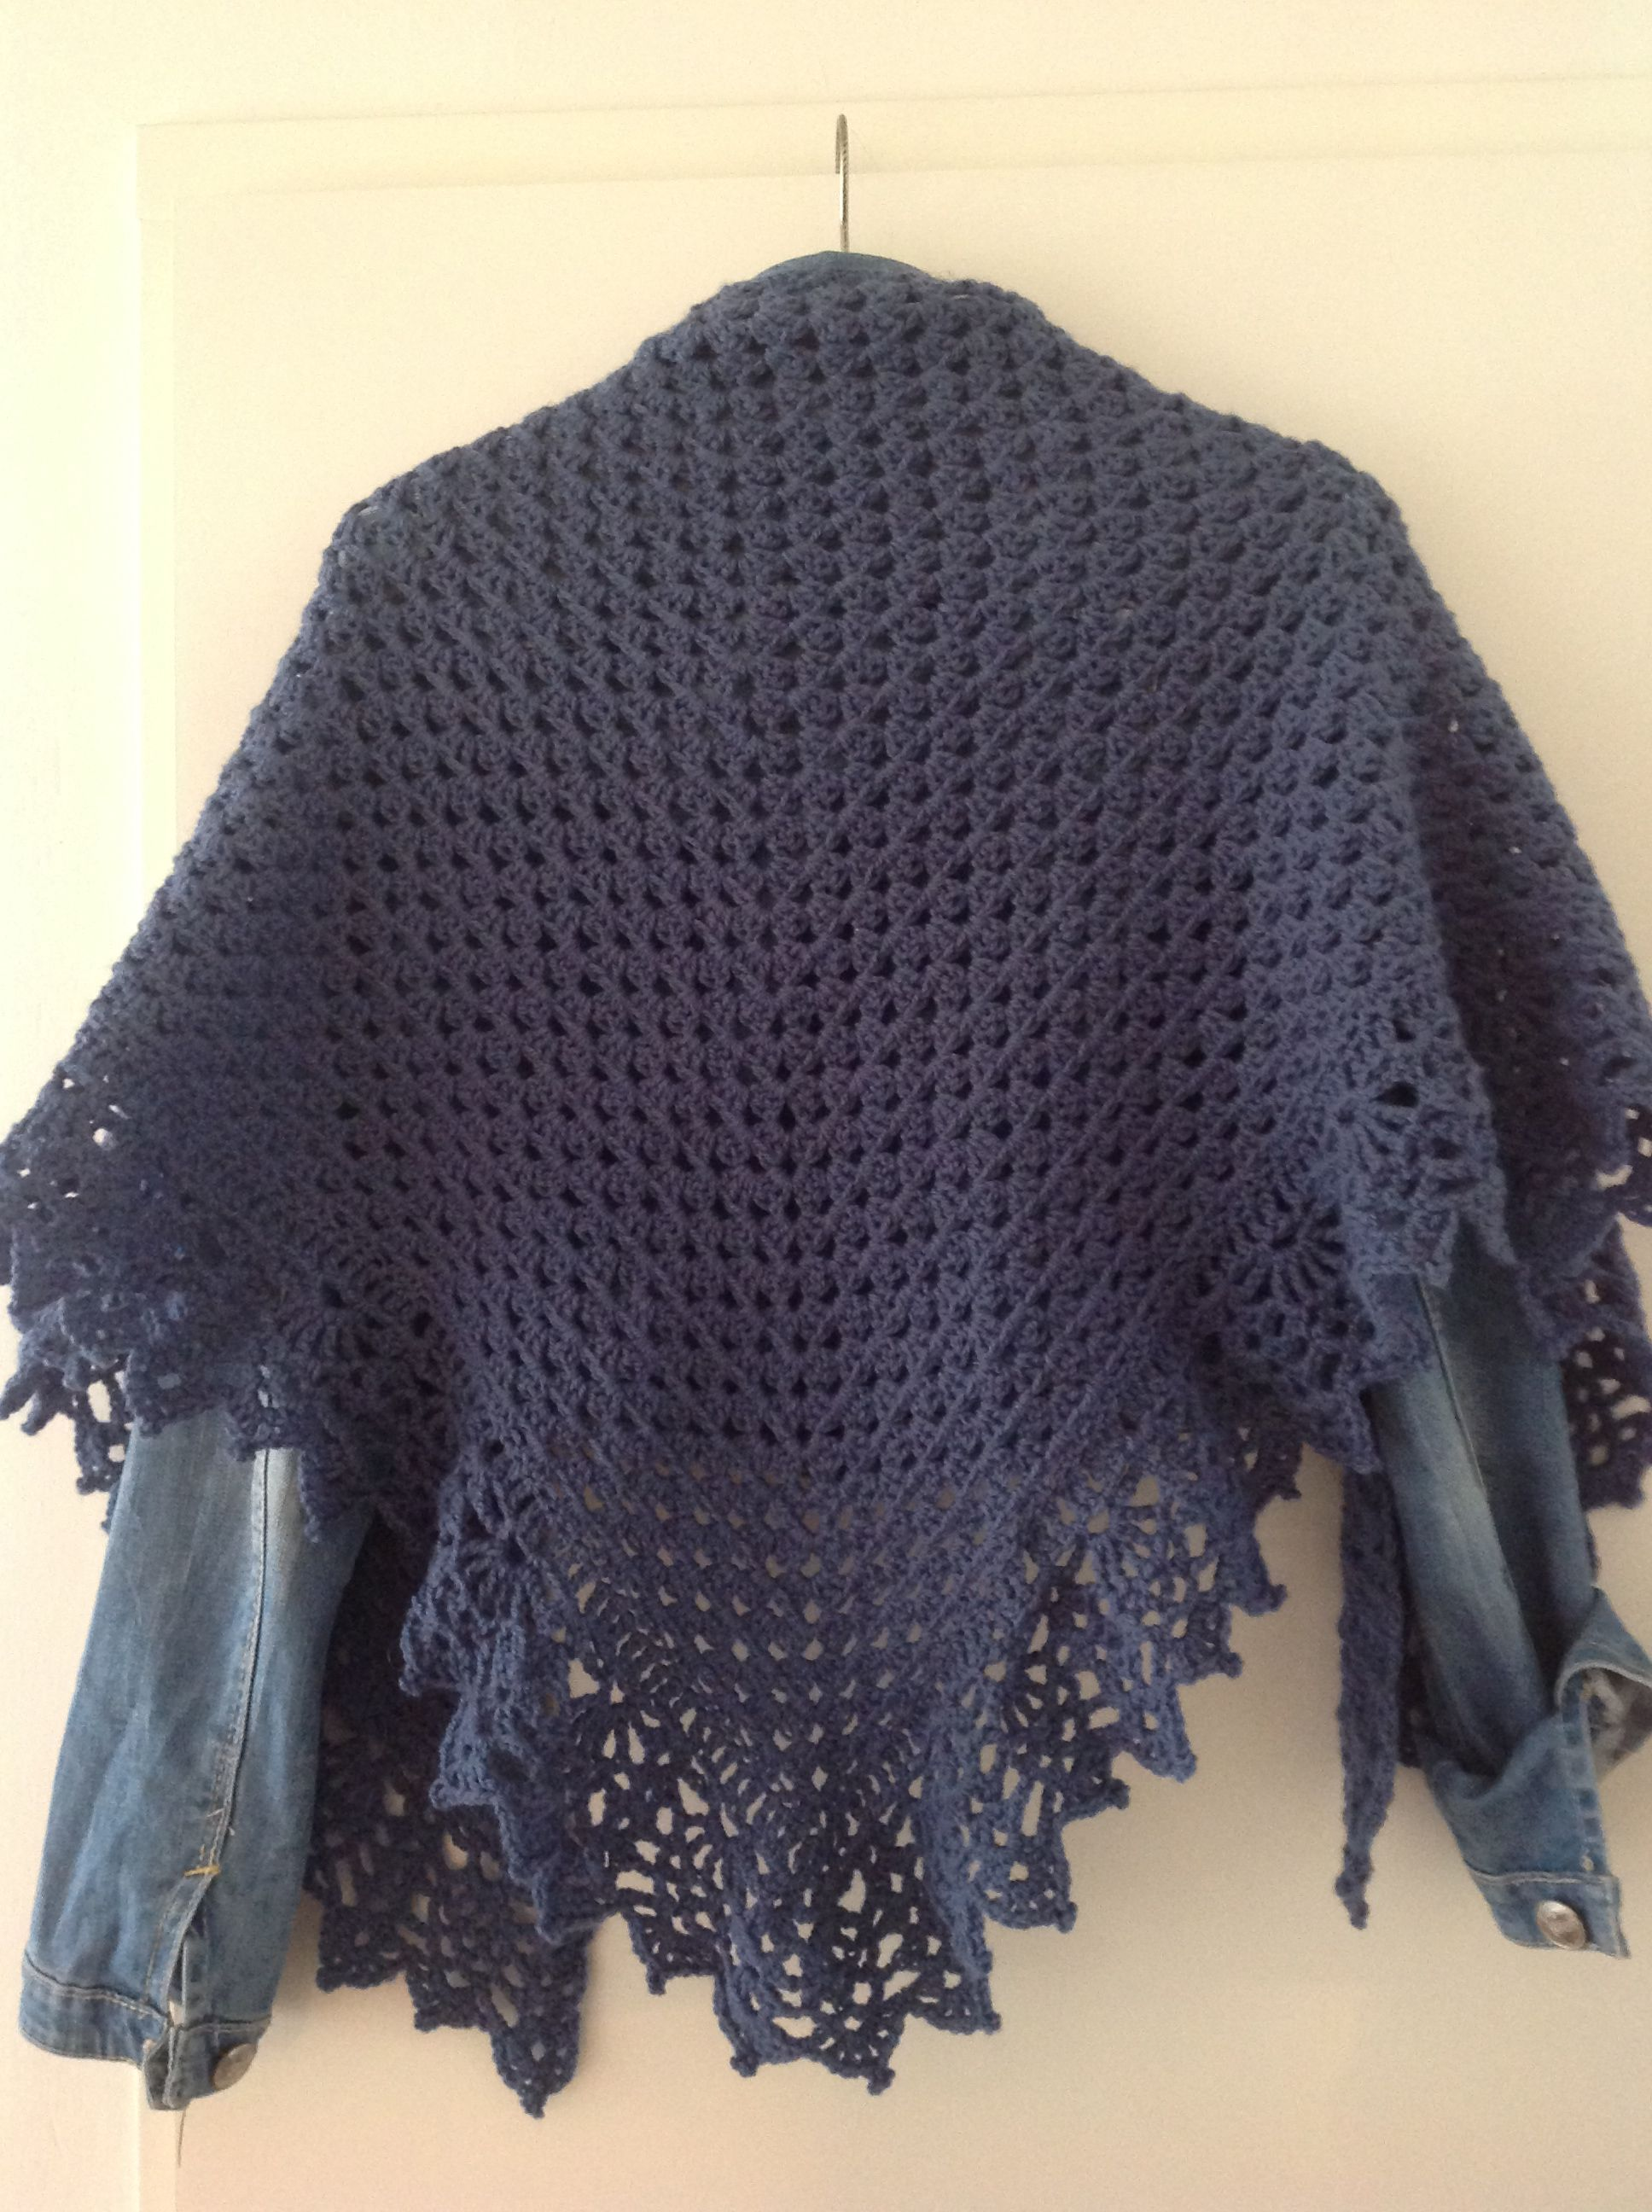 Half granny square shawl with all shawl edging.